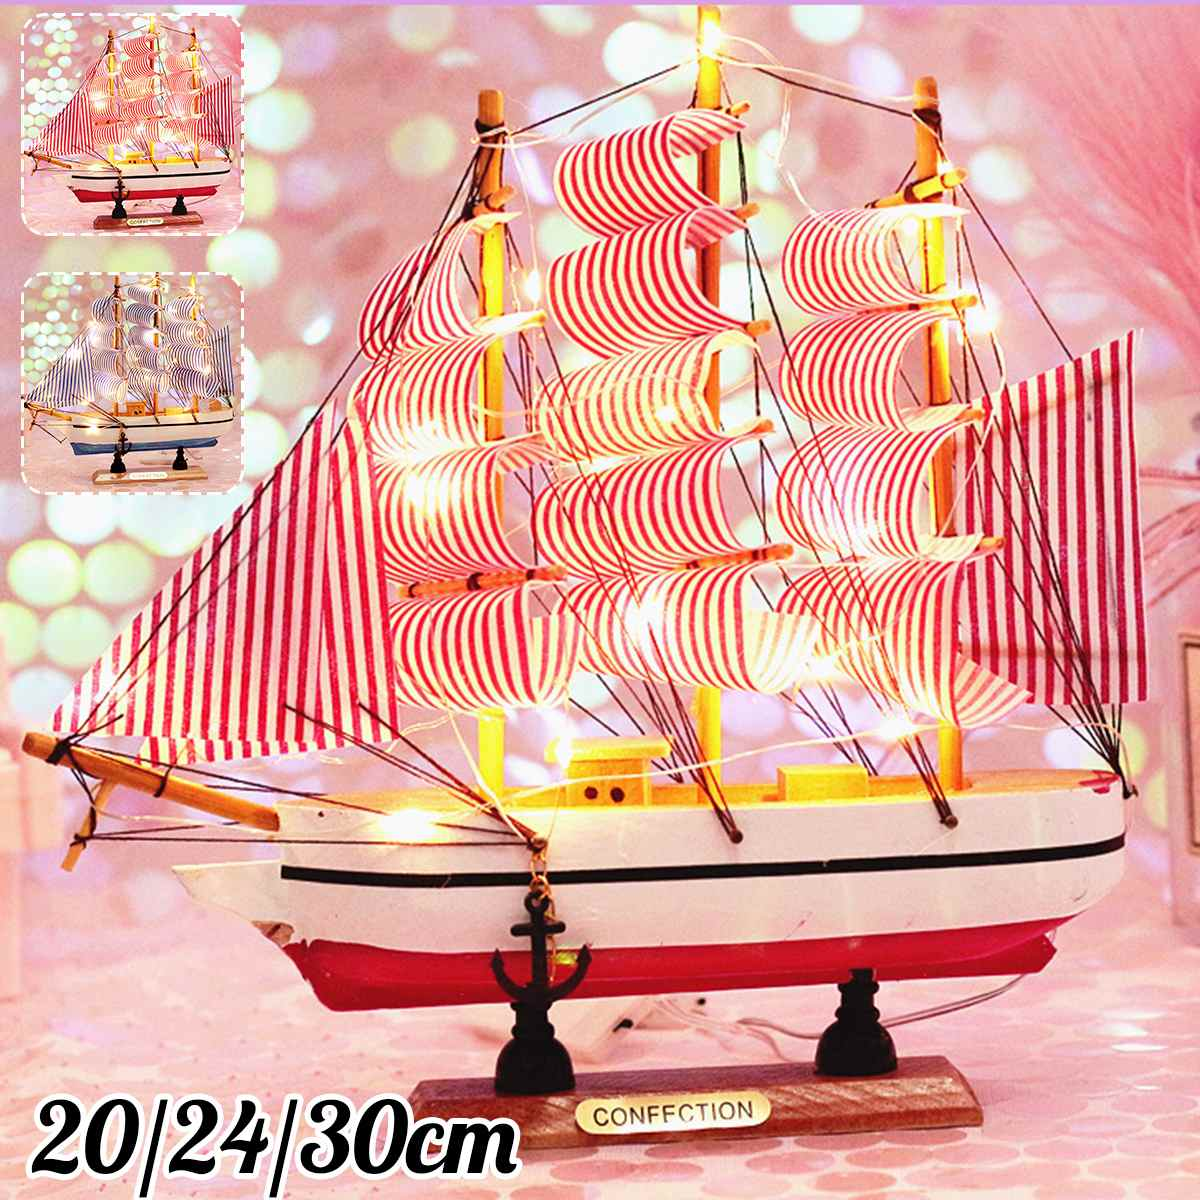 Sailboat Model With Led String 20/24/30cm Model Kits Retro Ship Crafts Handmade Wooden Sailing Boats Kids Toys Gift Home Decor